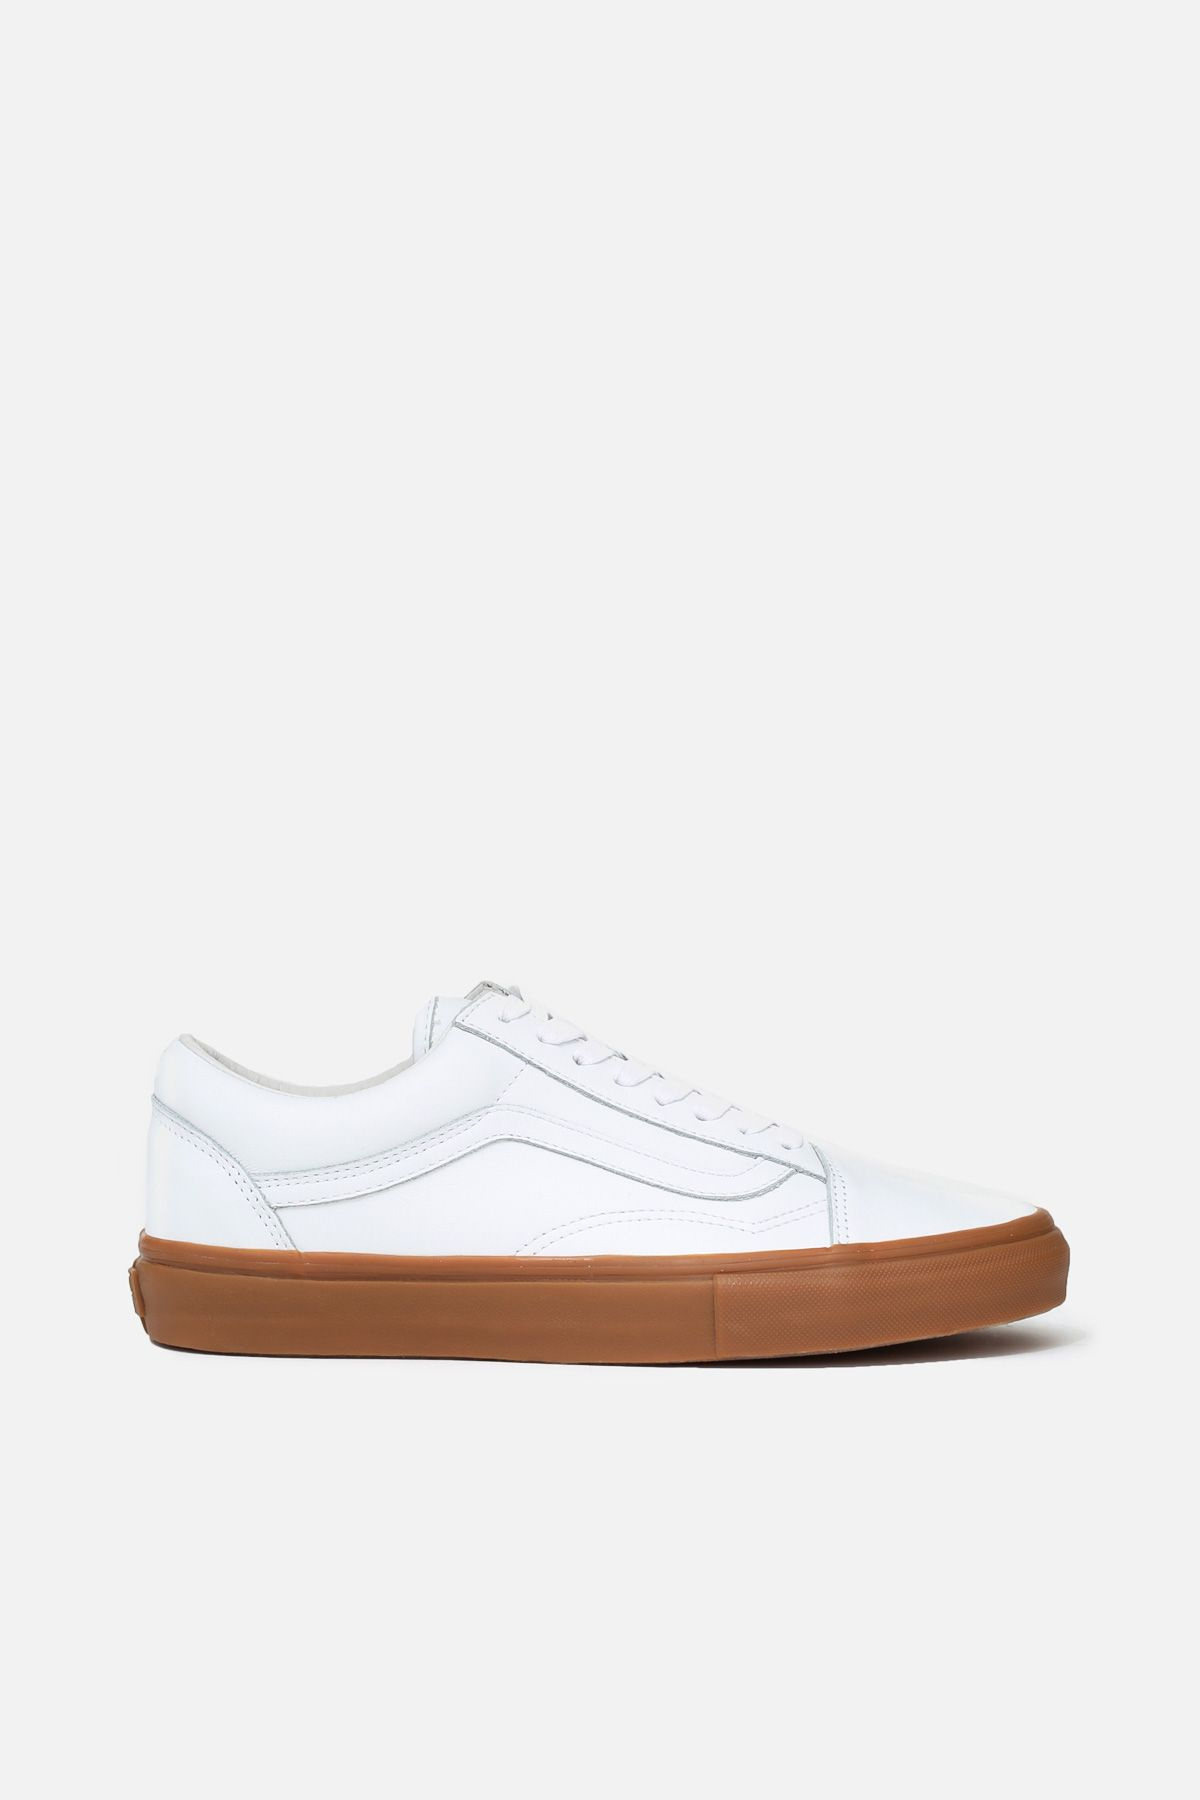 258563e84b1dfb Vans x Opening Ceremony Old Skool